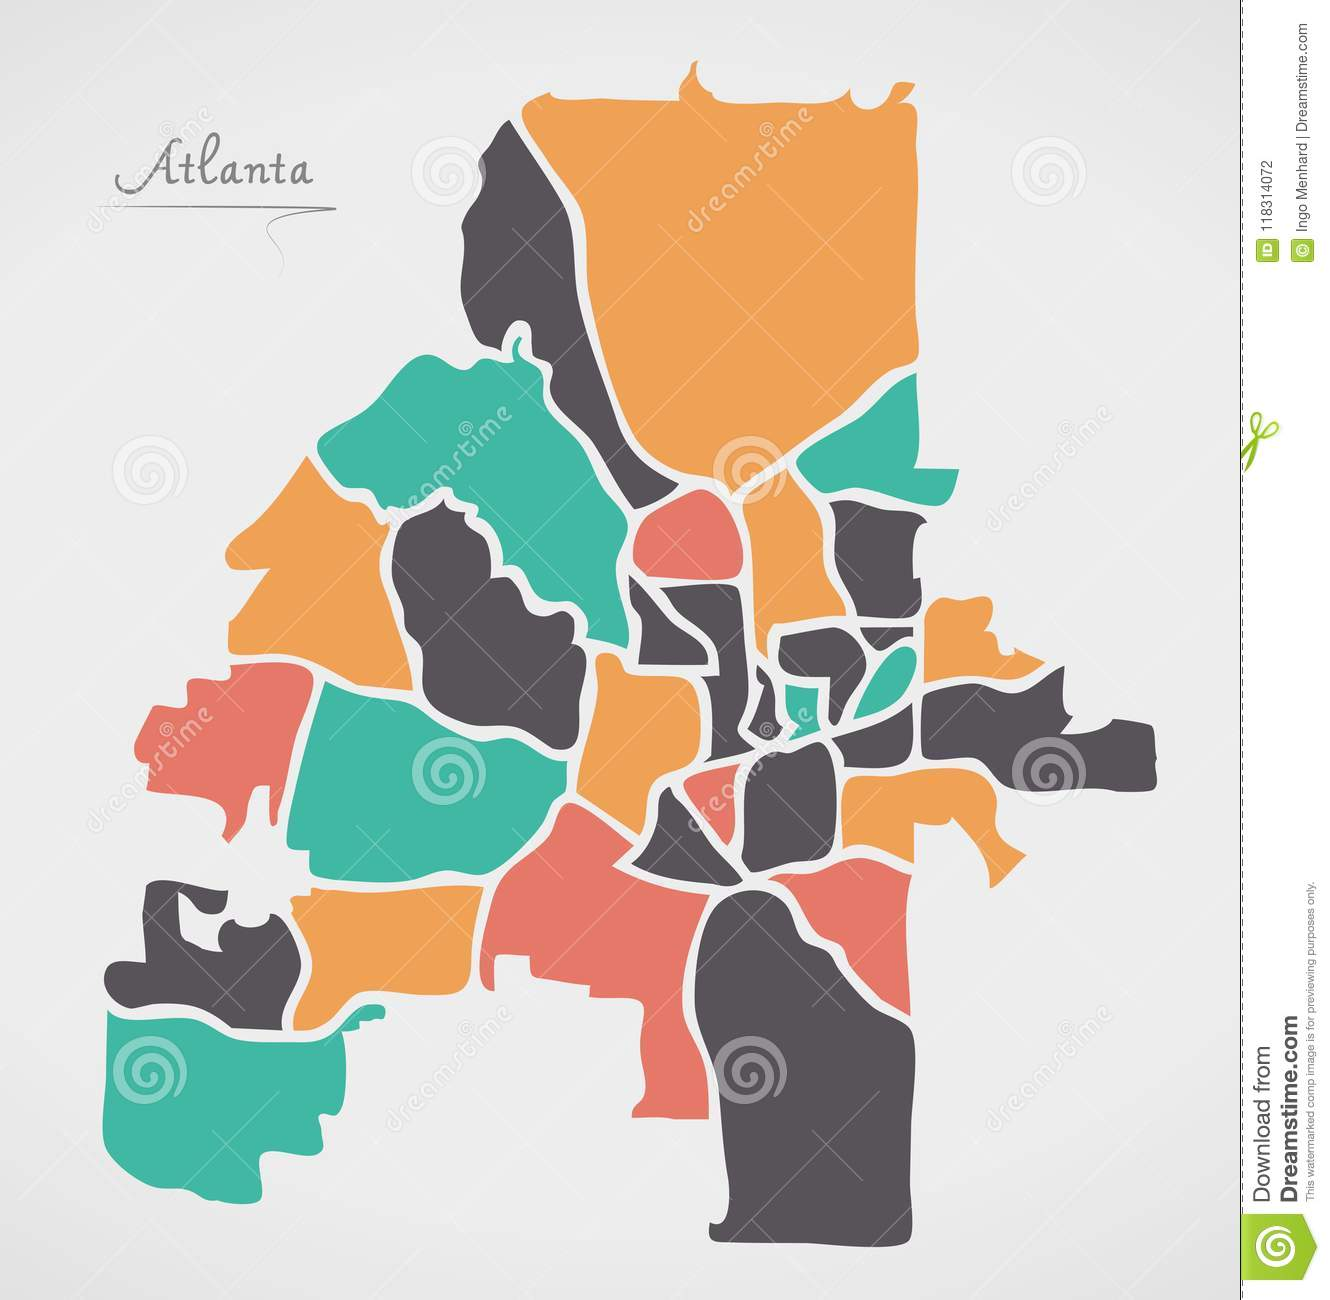 Atlanta Georgia Map With Neighborhoods And Modern Round Shapes Stock